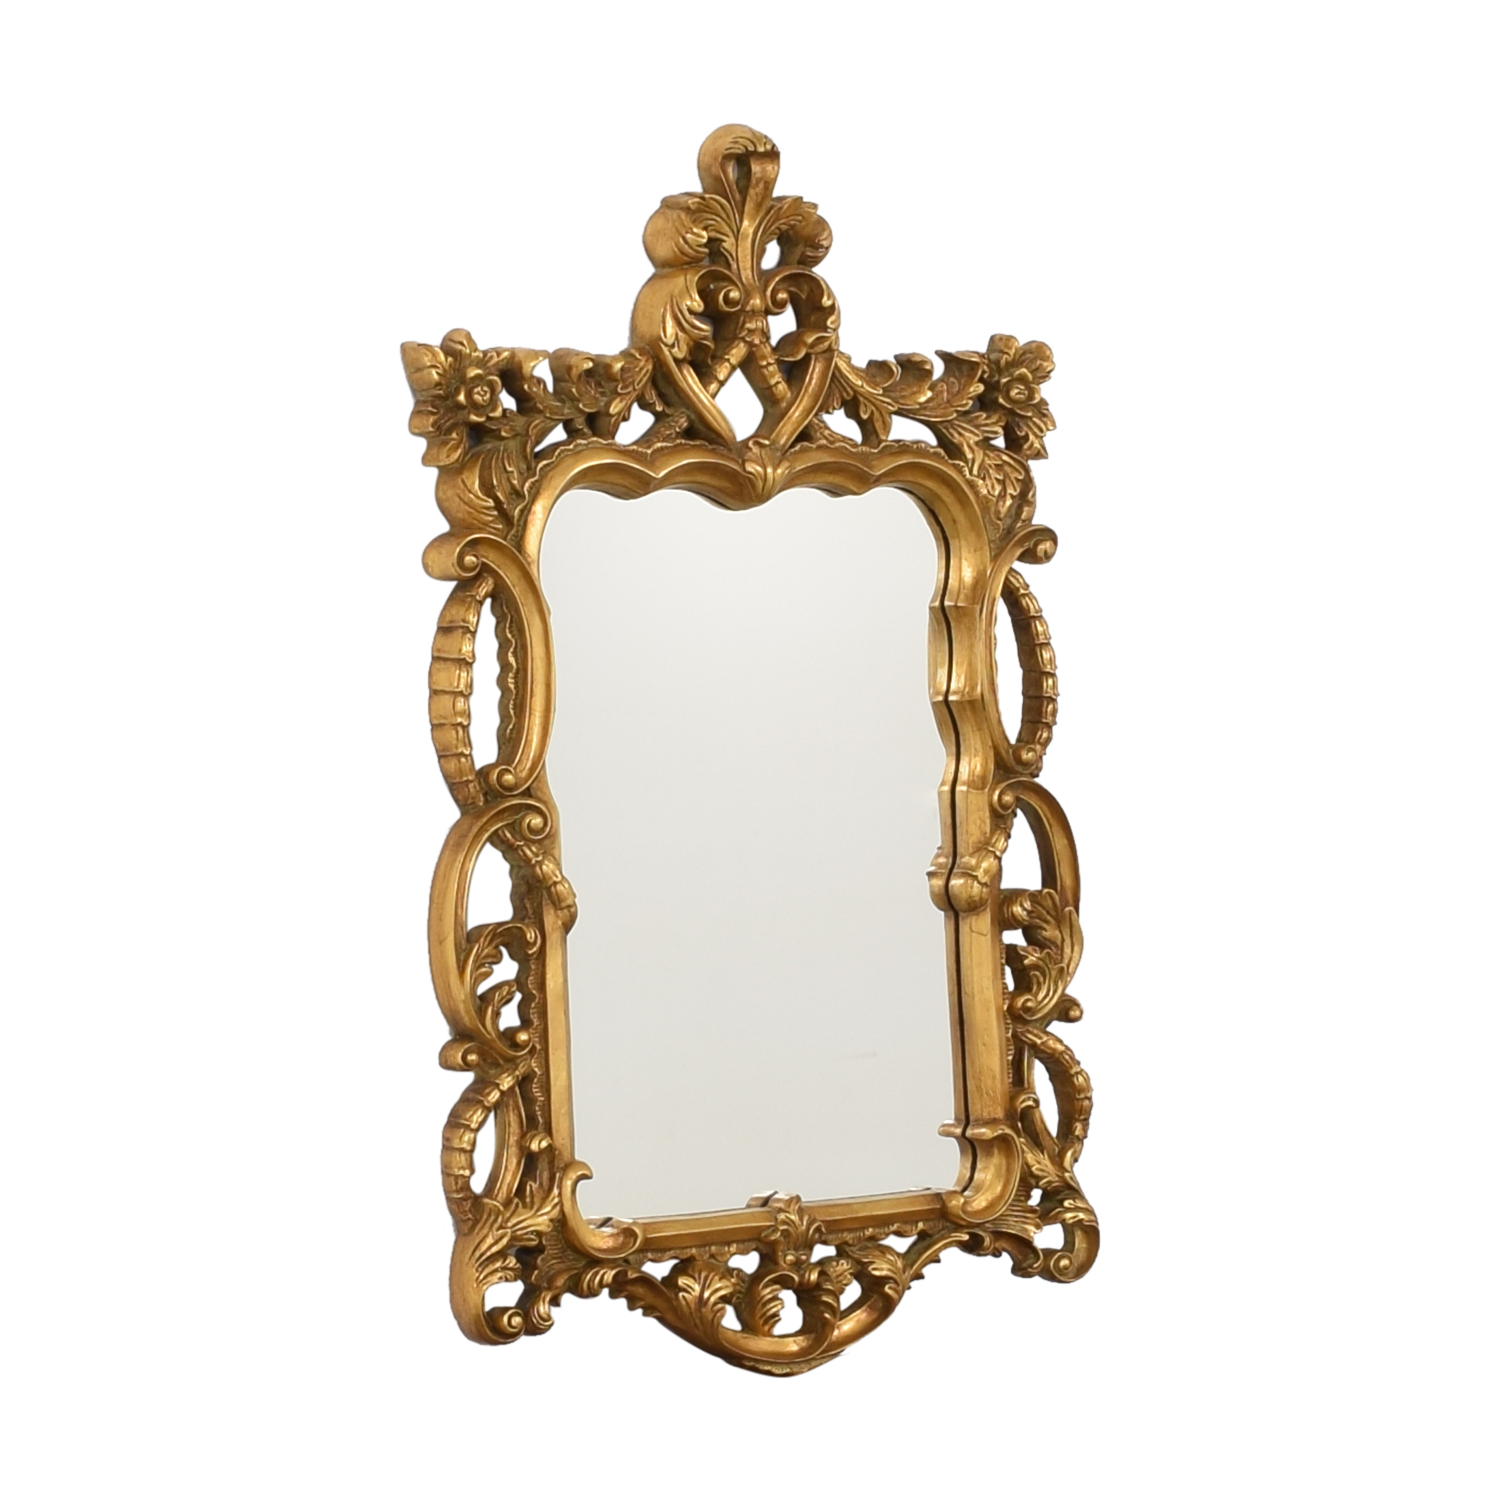 Horchow Sterling Industries Ornate Wall Mirror sale